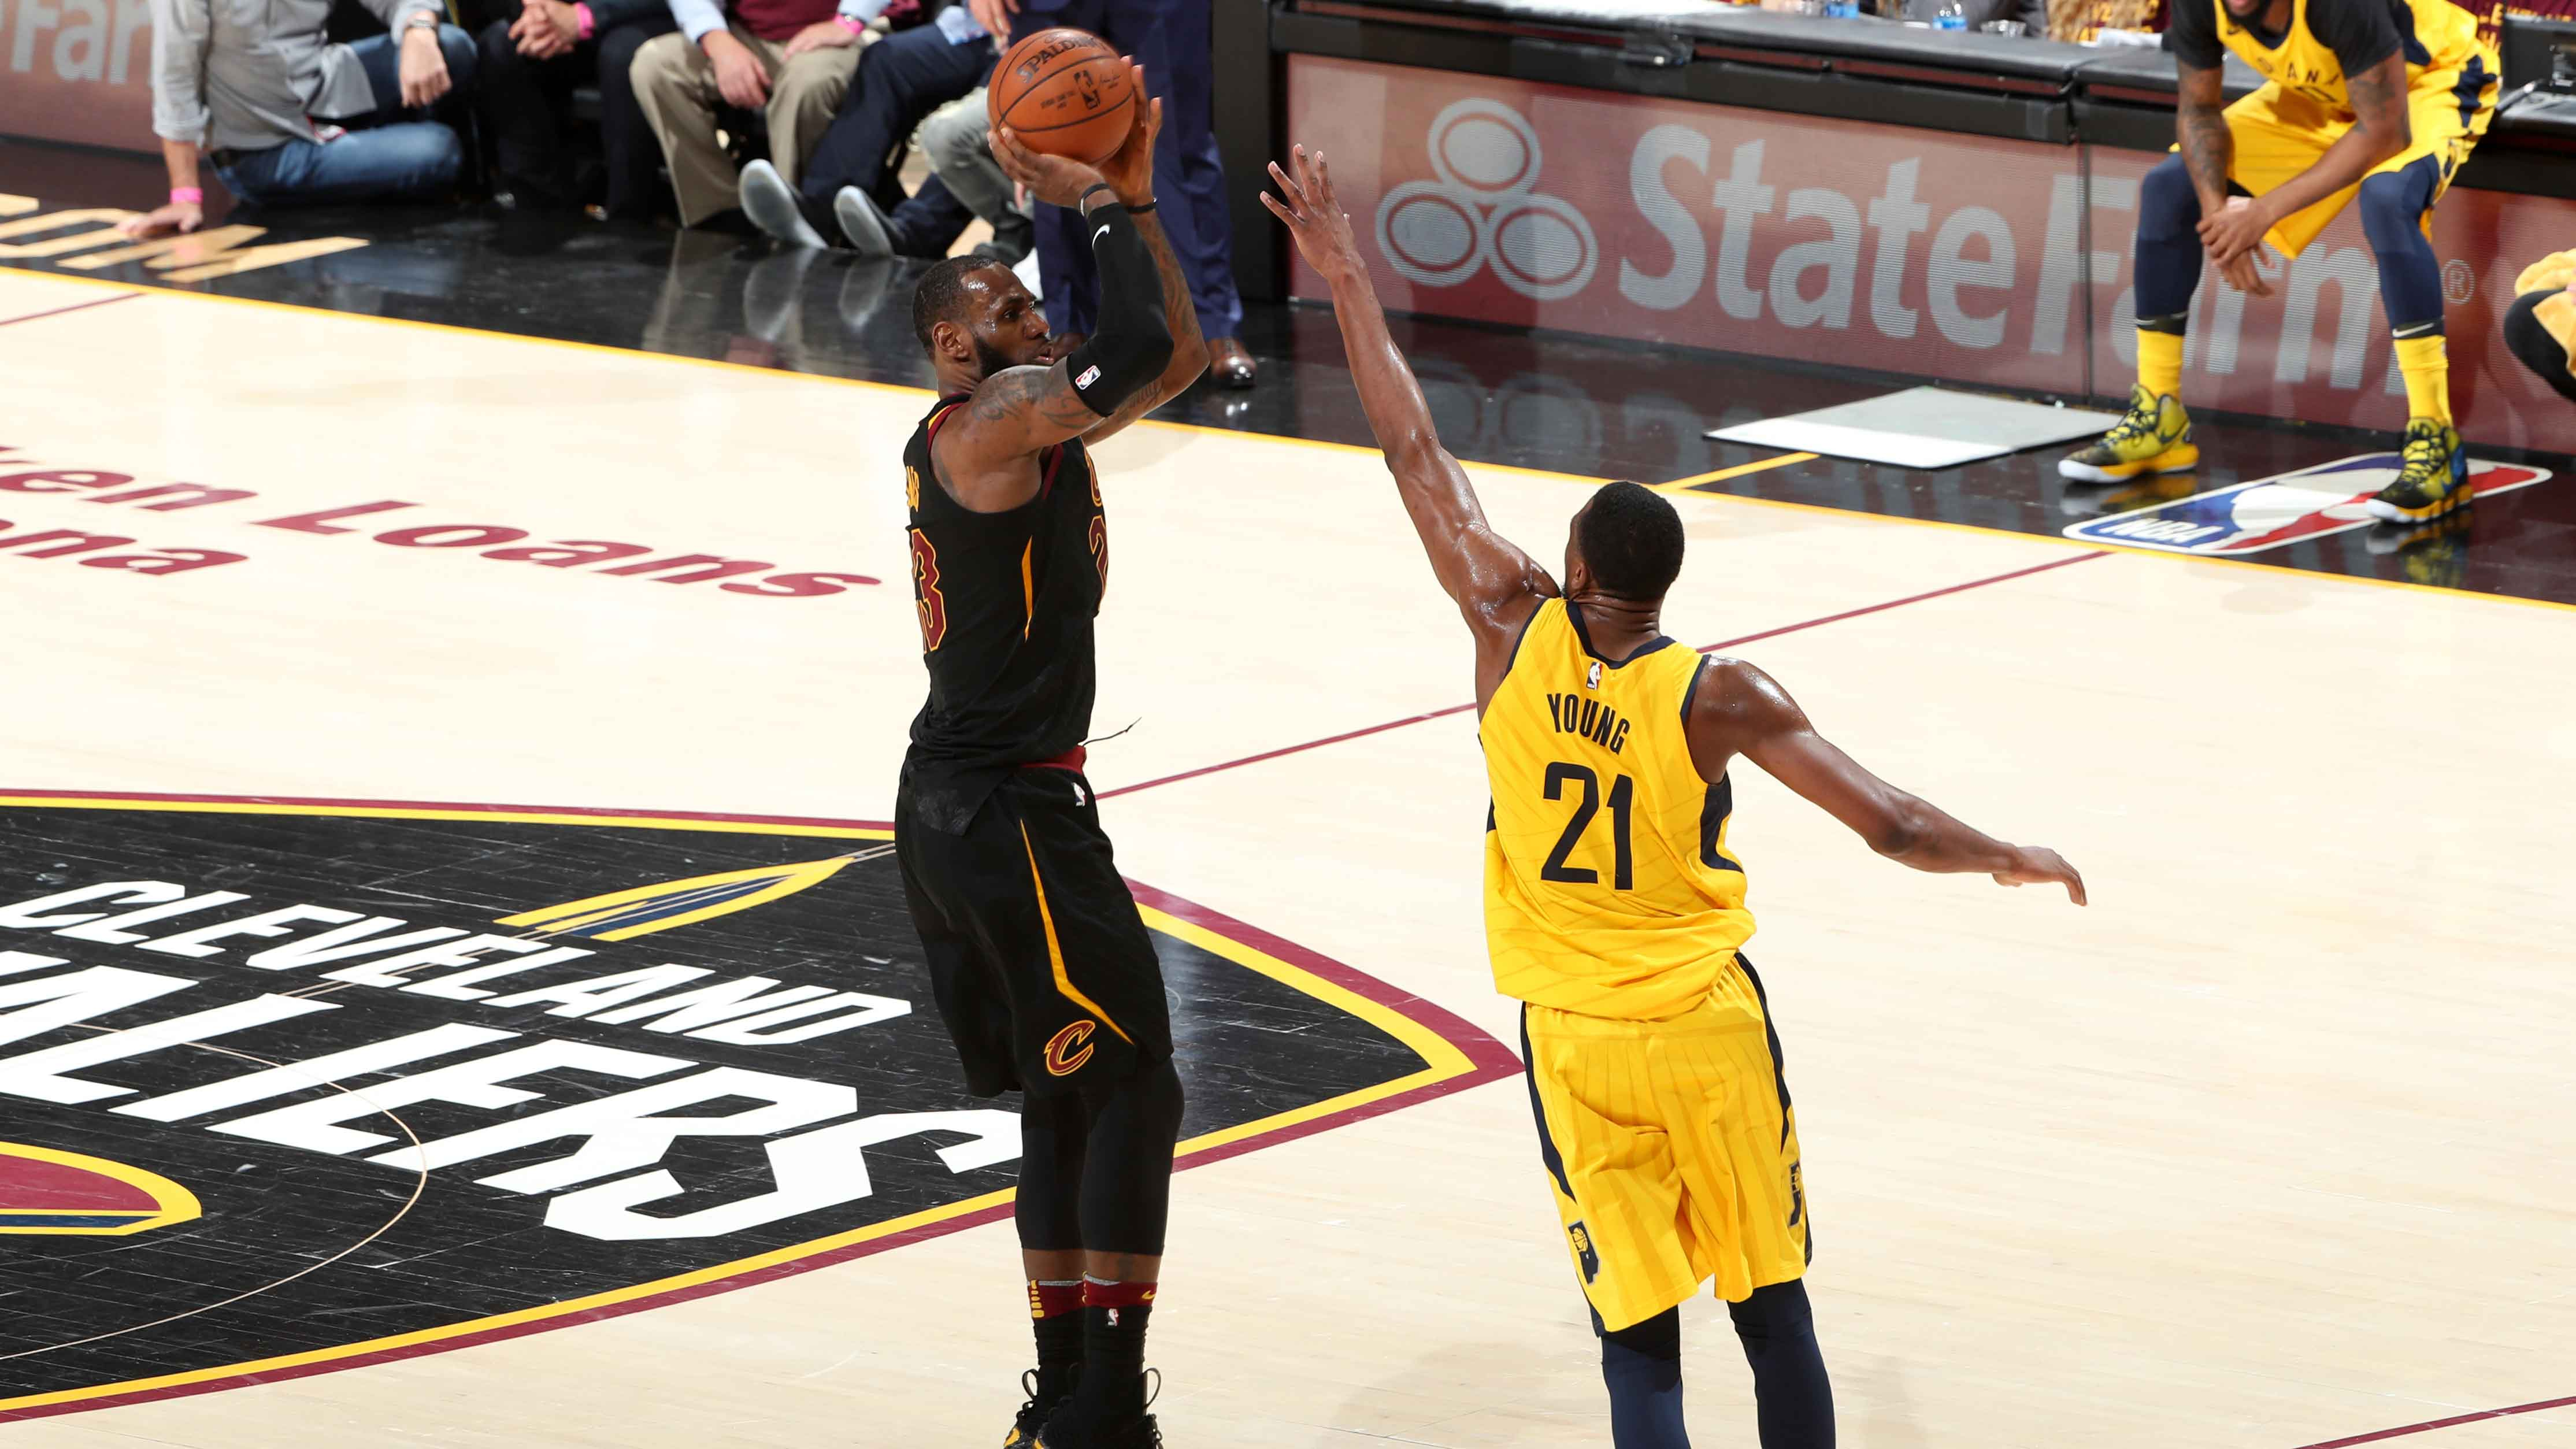 GAME 5 RECAP: CAVALIERS 98, PACERS 95